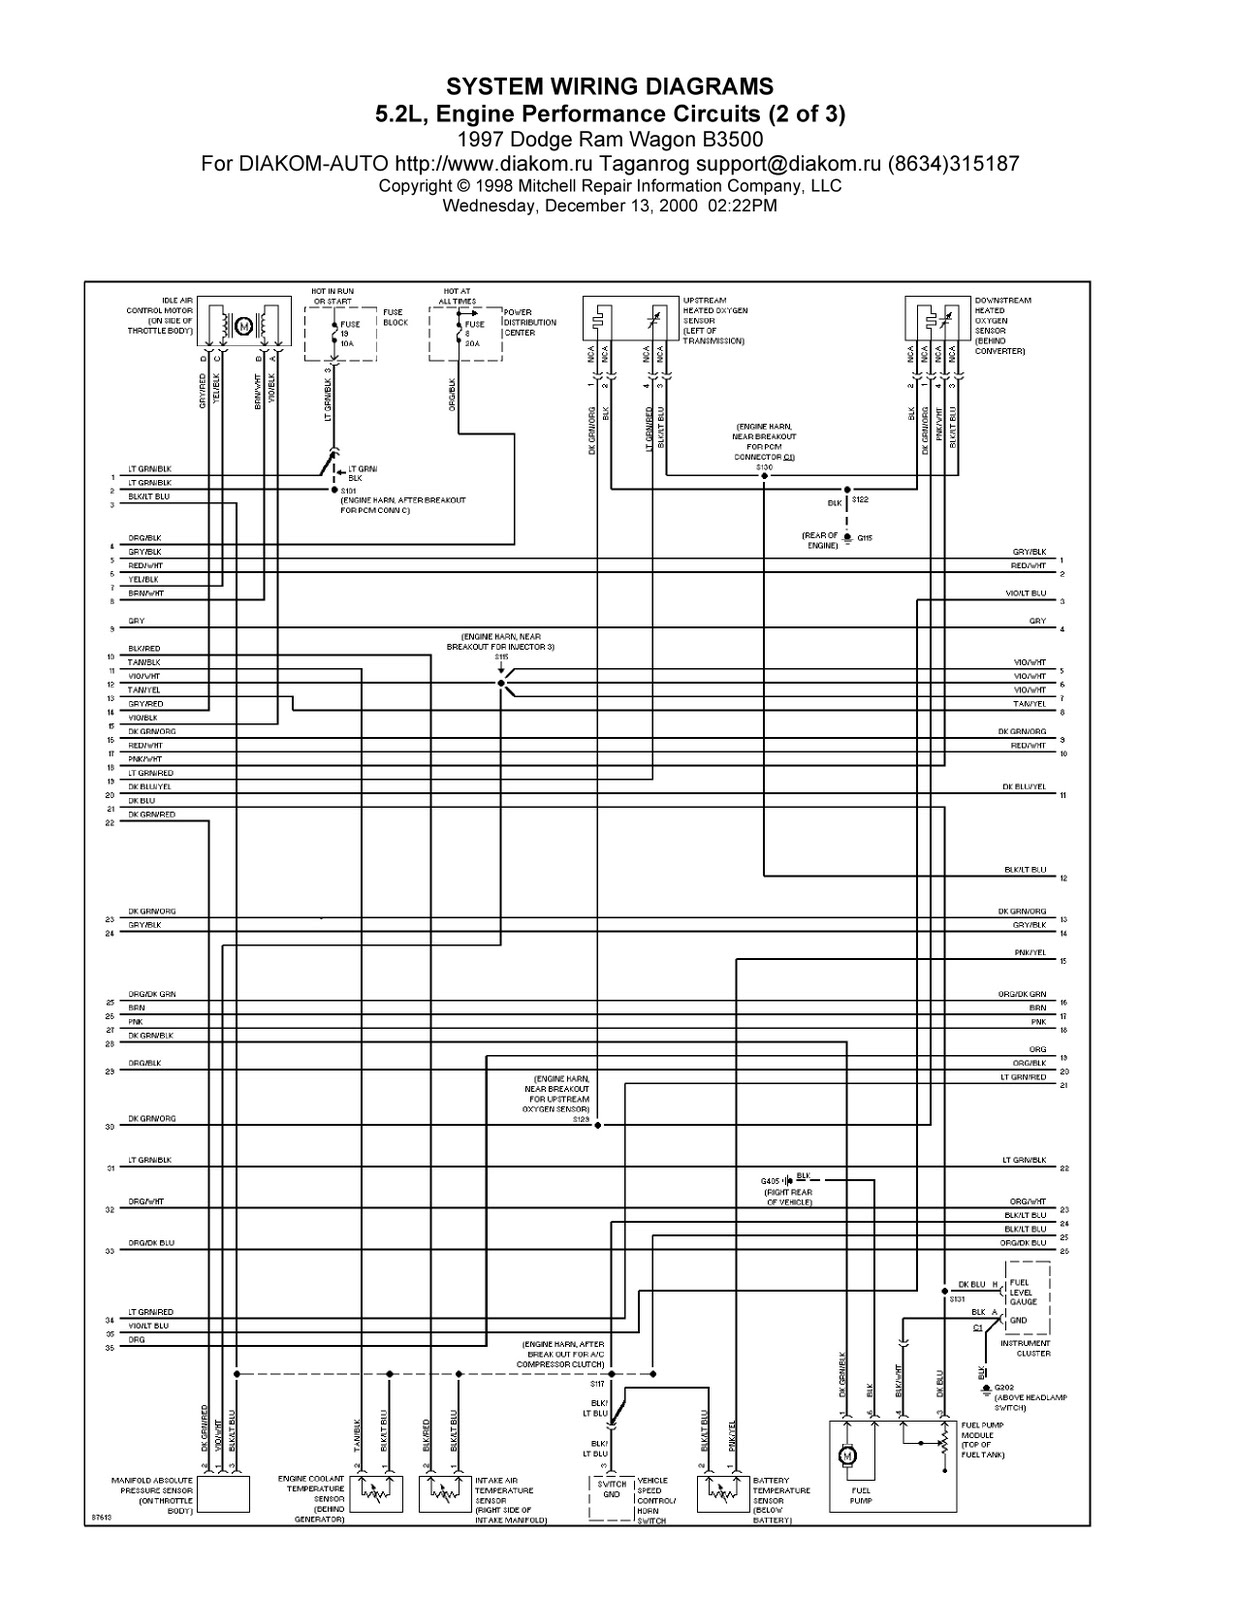 1997 Dodge Ram Wagon B3500 System Wiring Diagram 52l Engine Caravan Performance Circuits